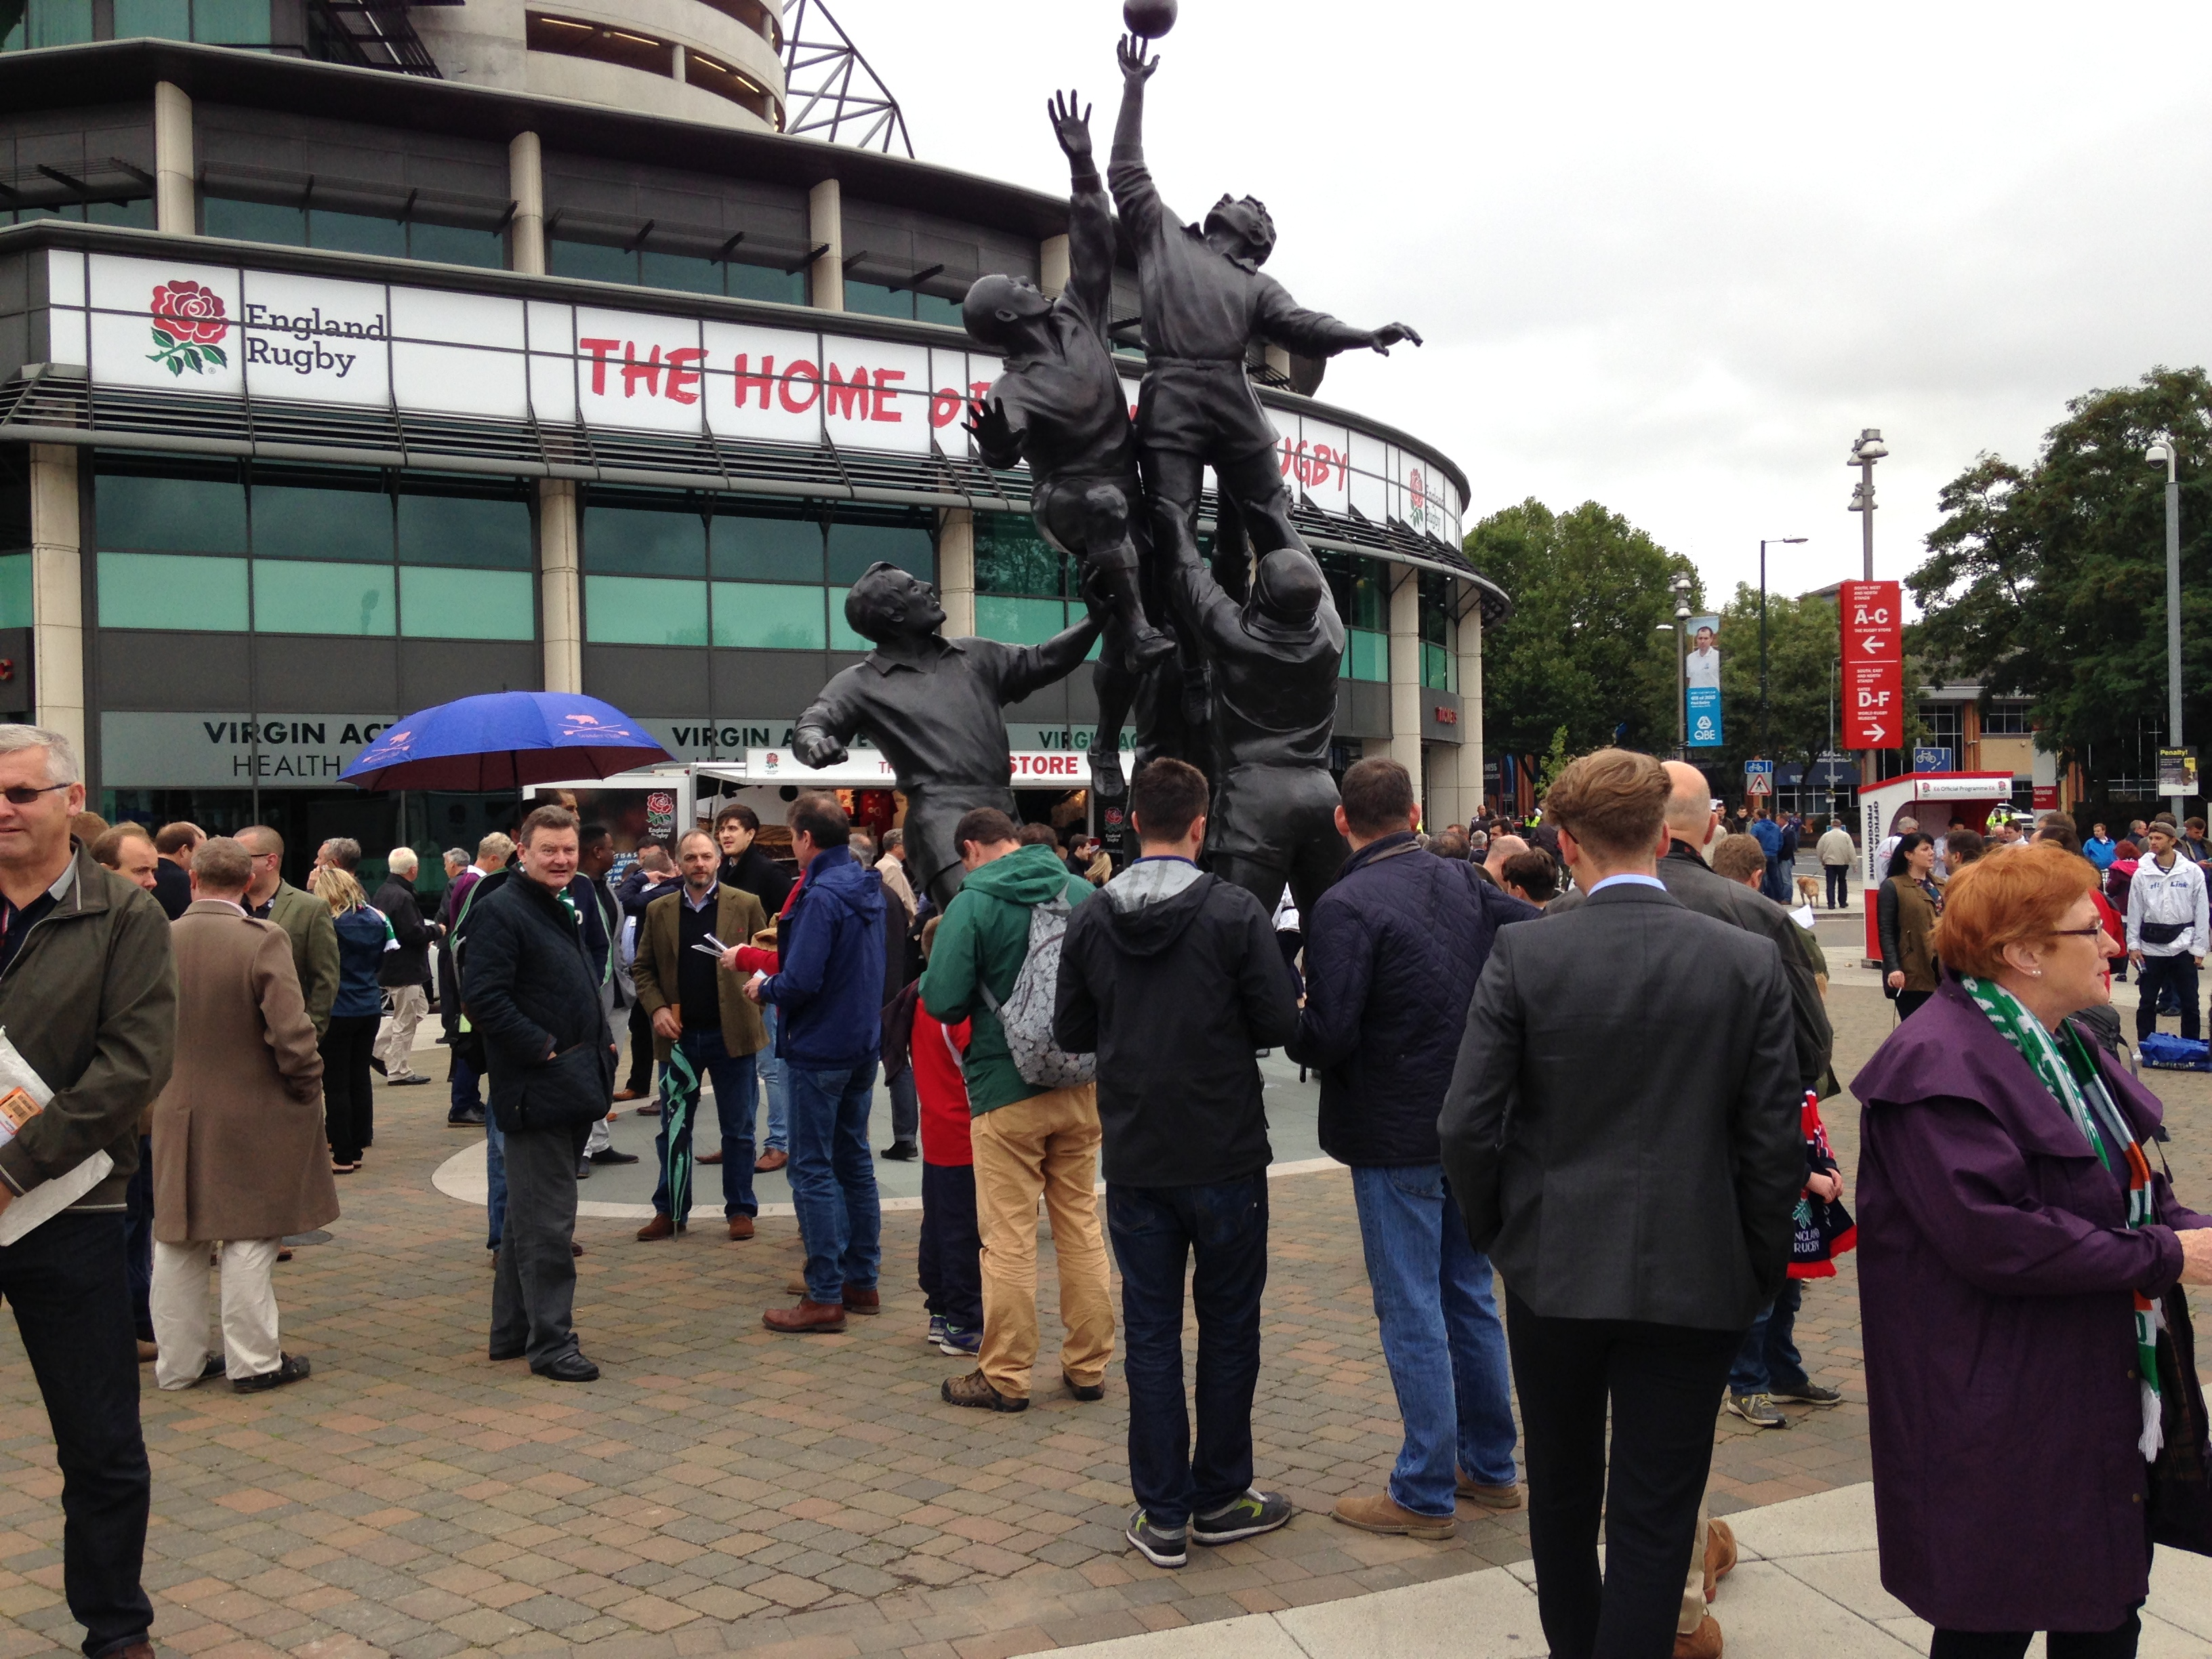 Safe Standing for crowd movement at Twickenham